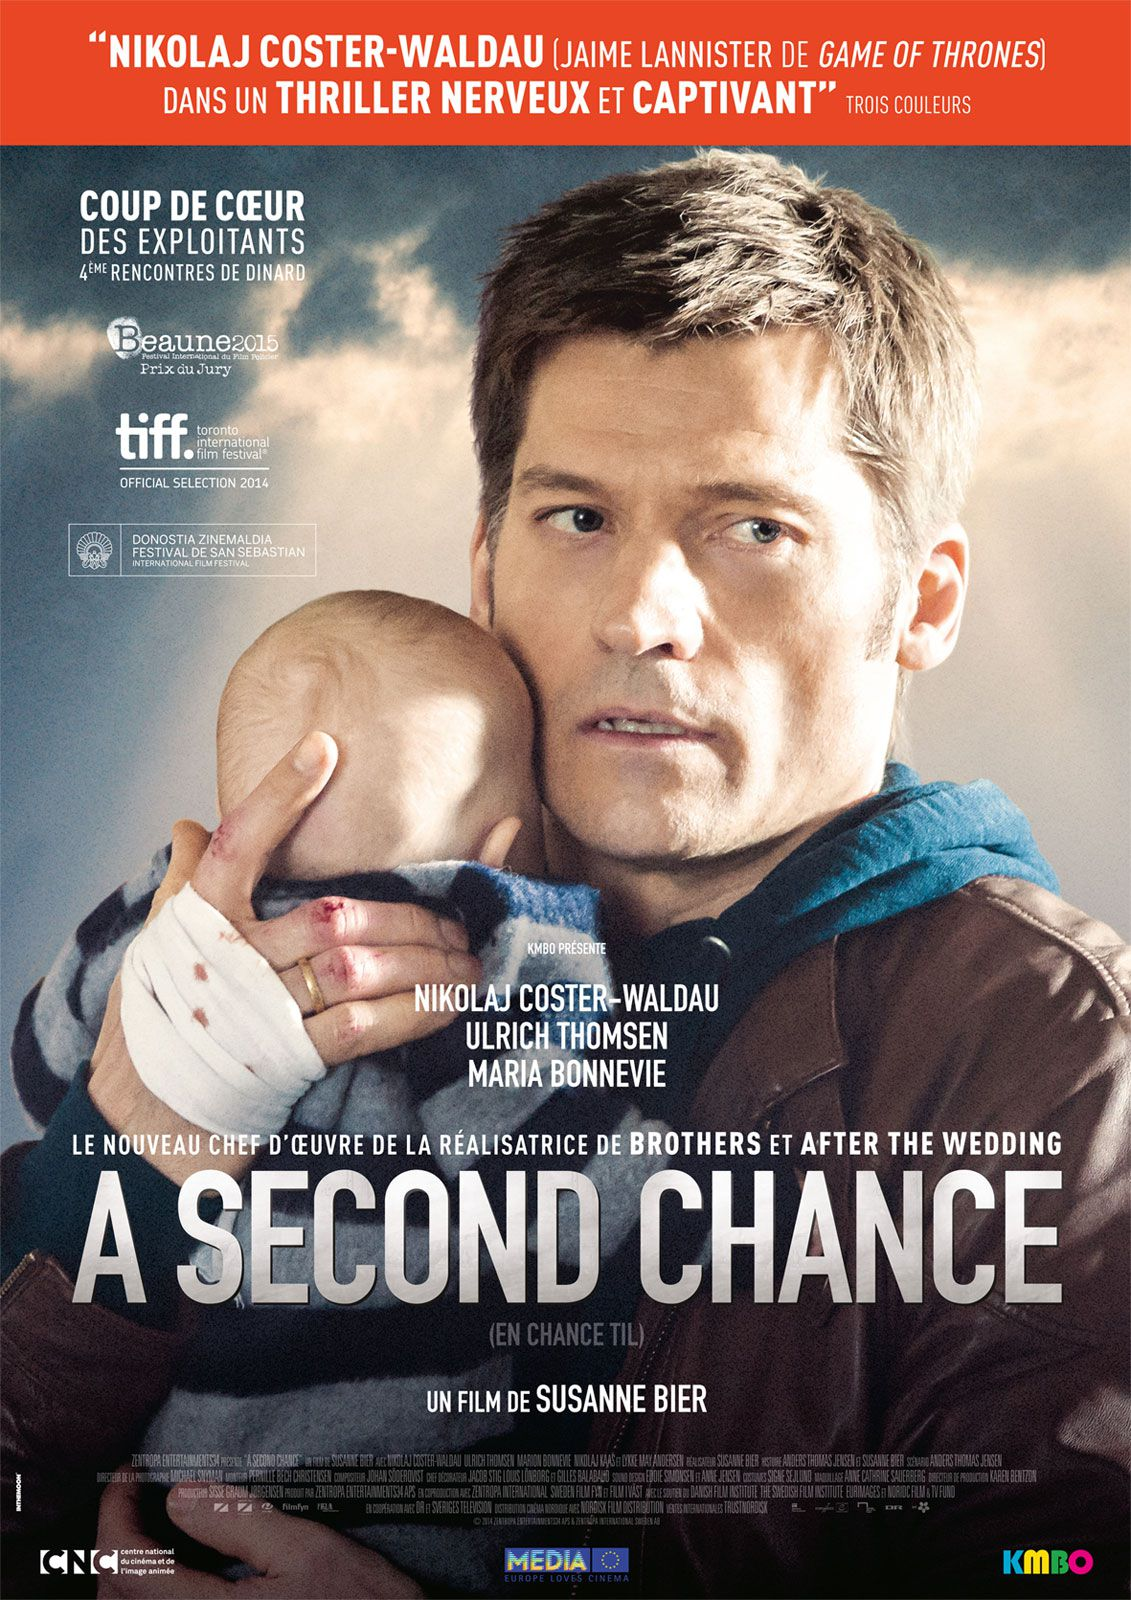 A Second Chance - Film (2015)